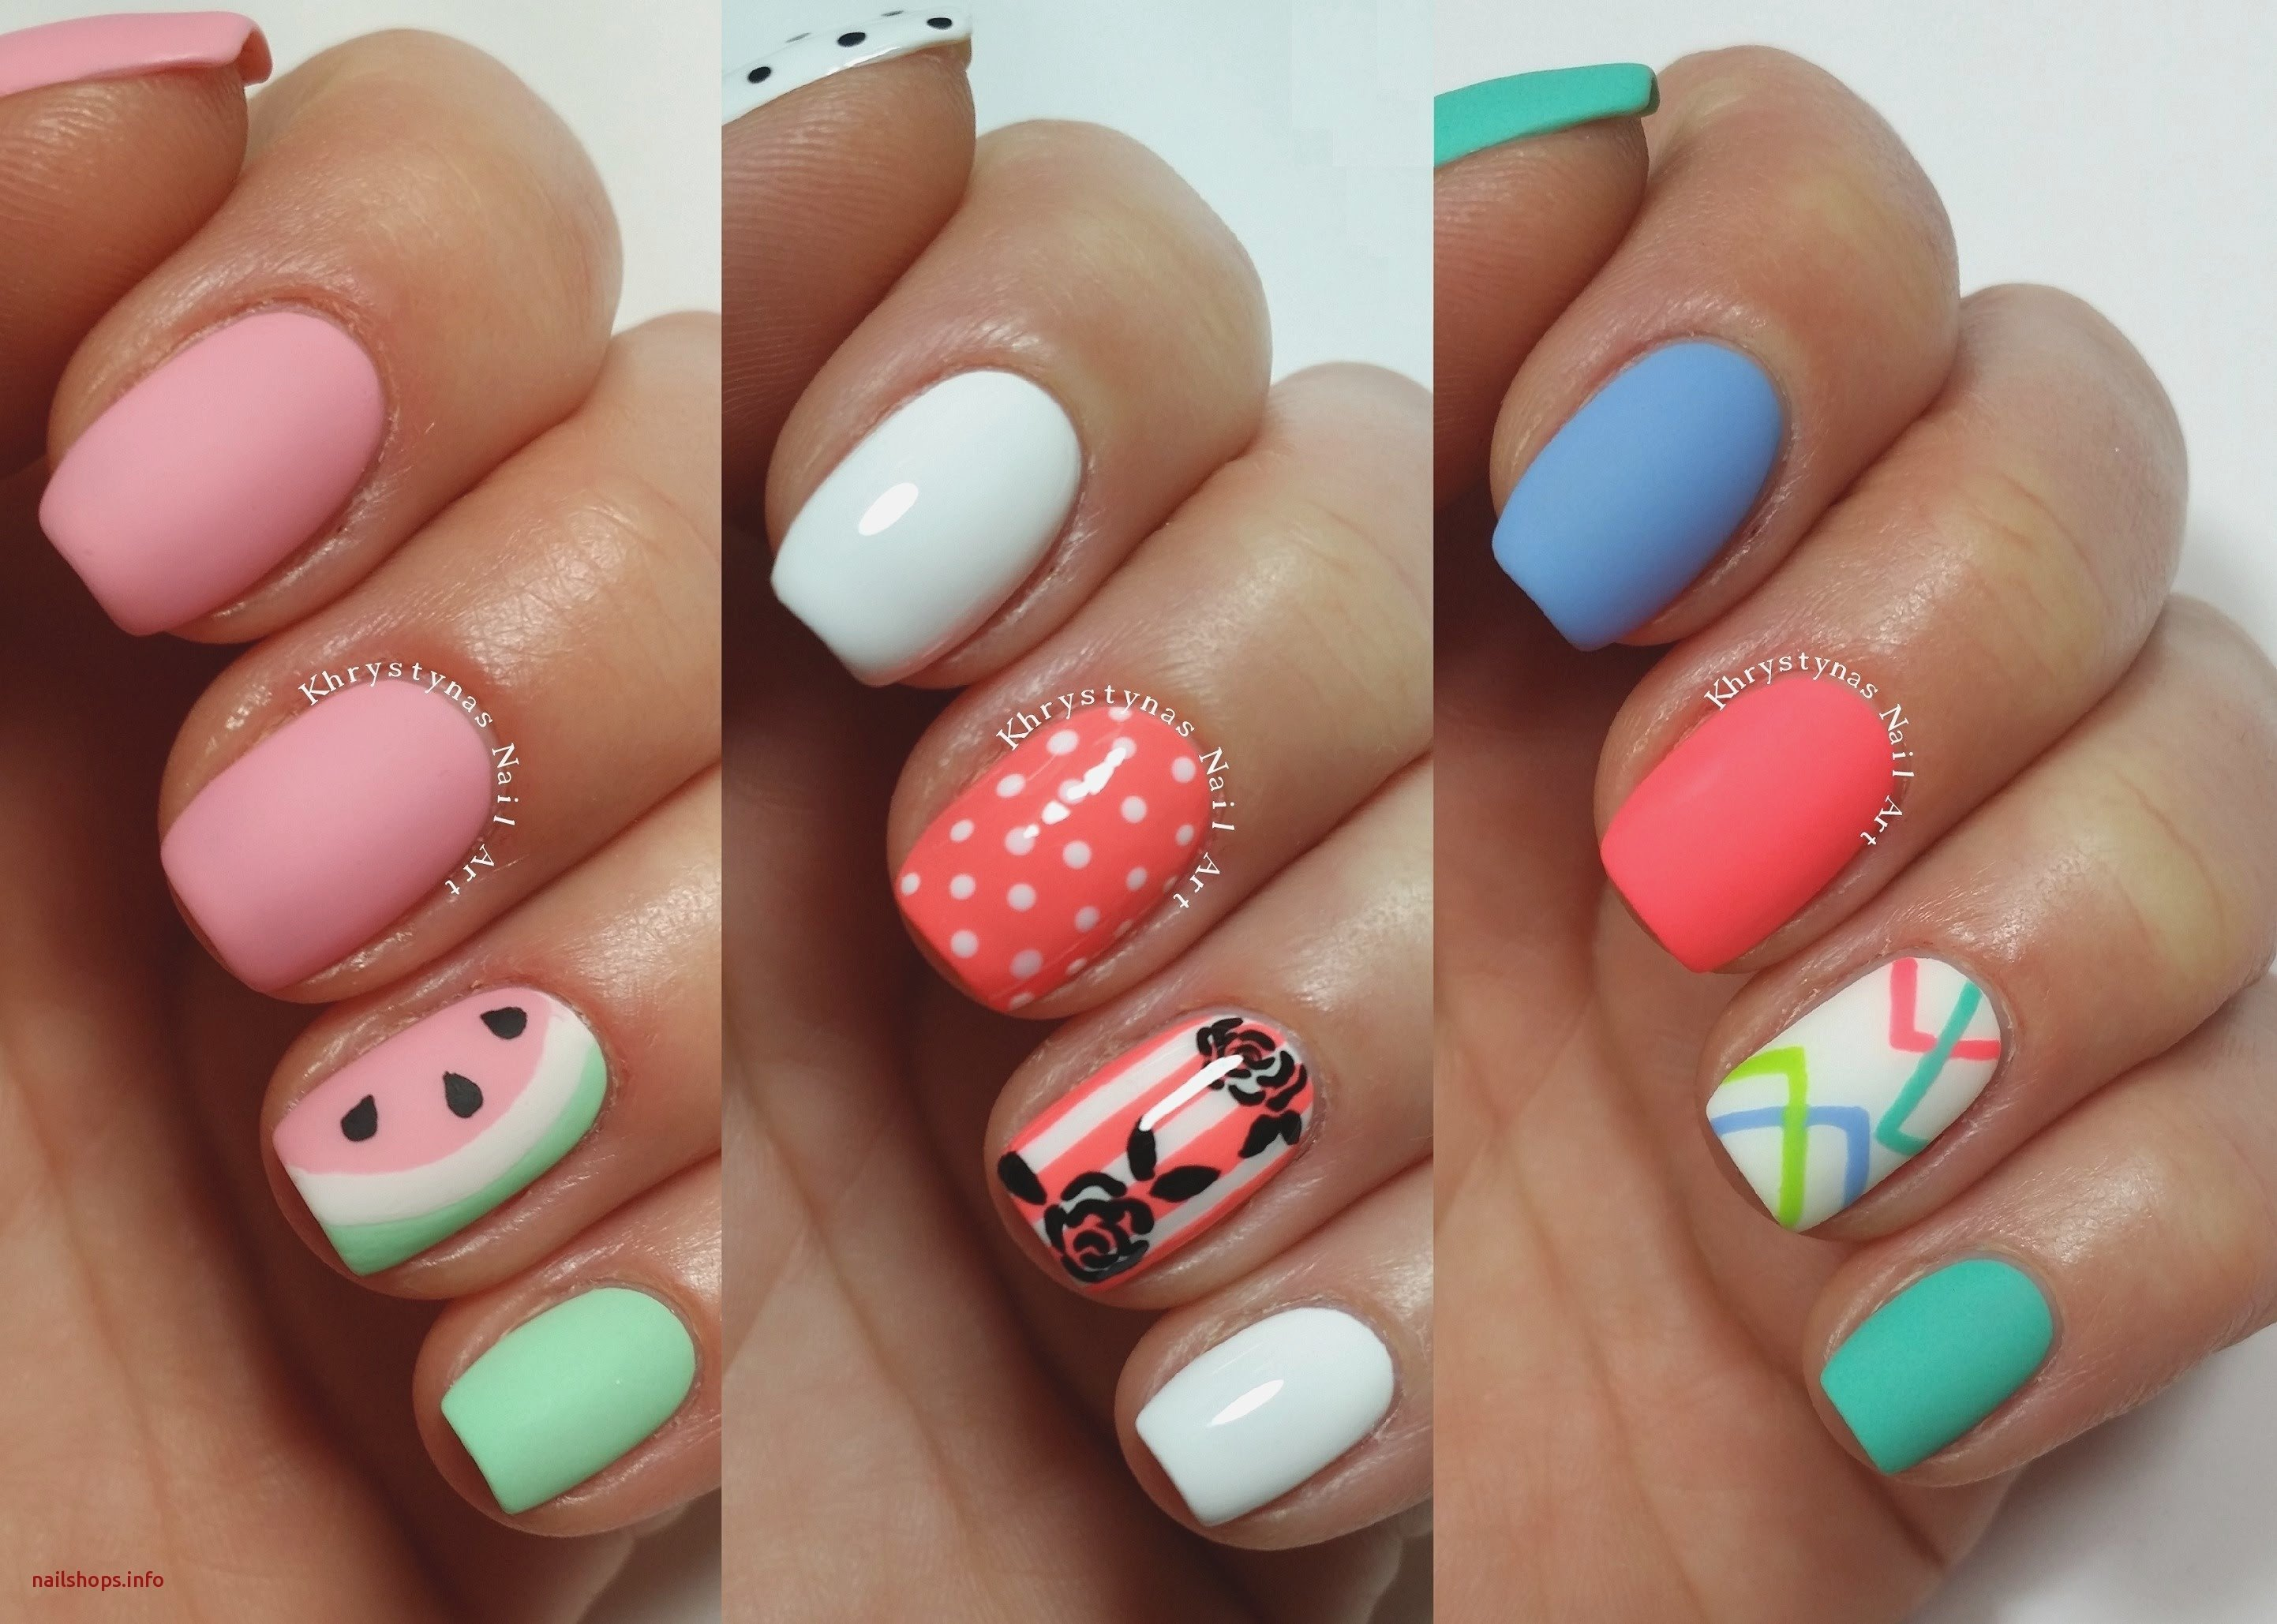 10 Nice Nail Design Ideas For Short Nails easiest nail art designs best of 22 ideas easy nail art designs for 1